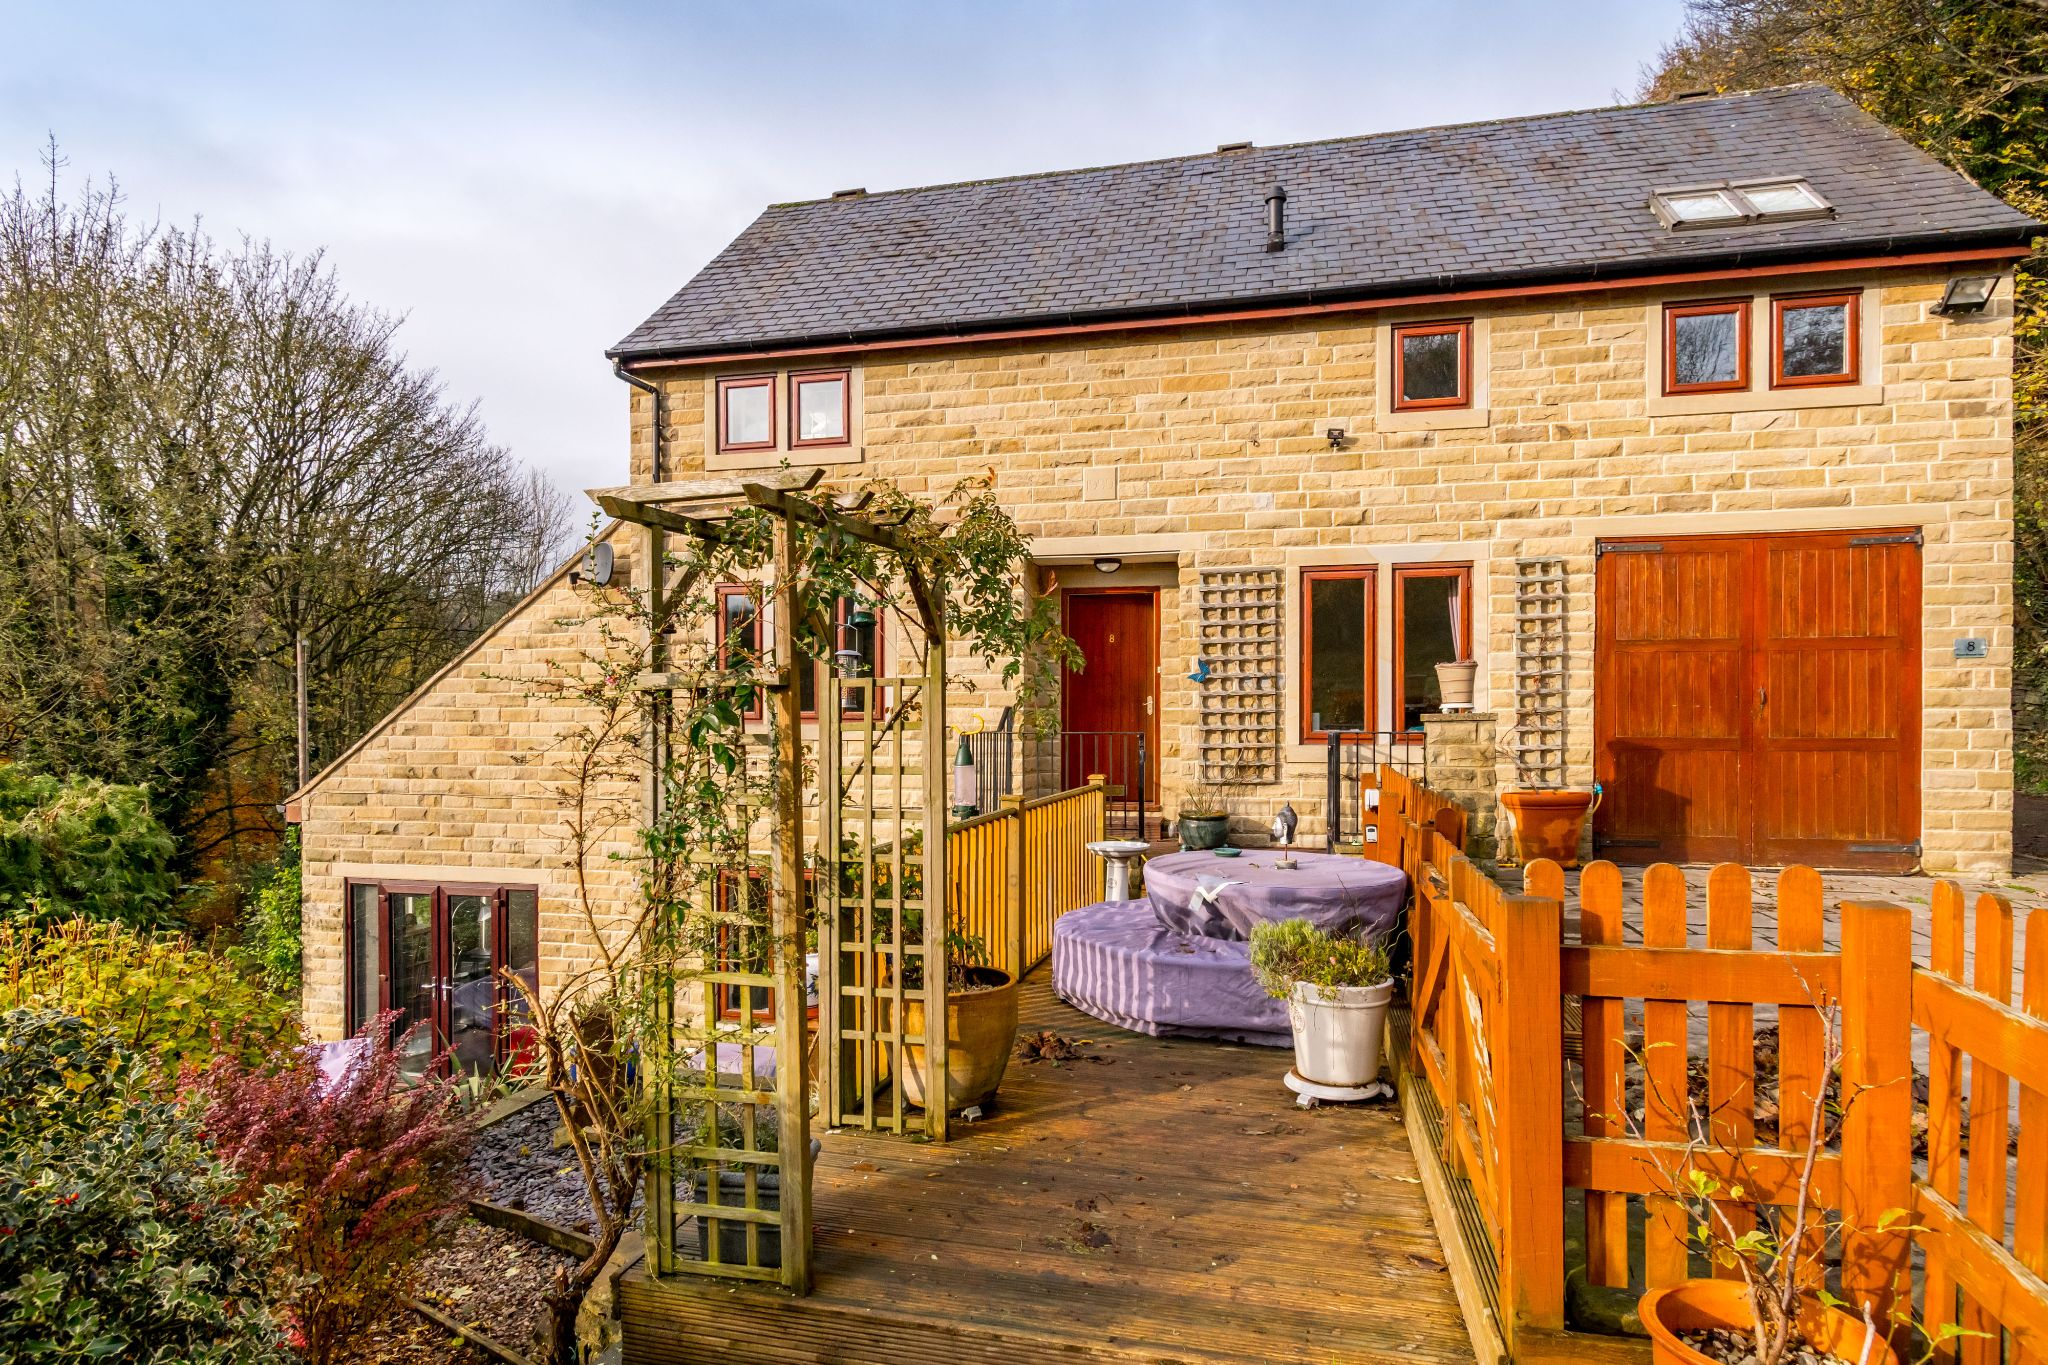 3 bedroom detached house For Sale in Brighouse - Front aspect